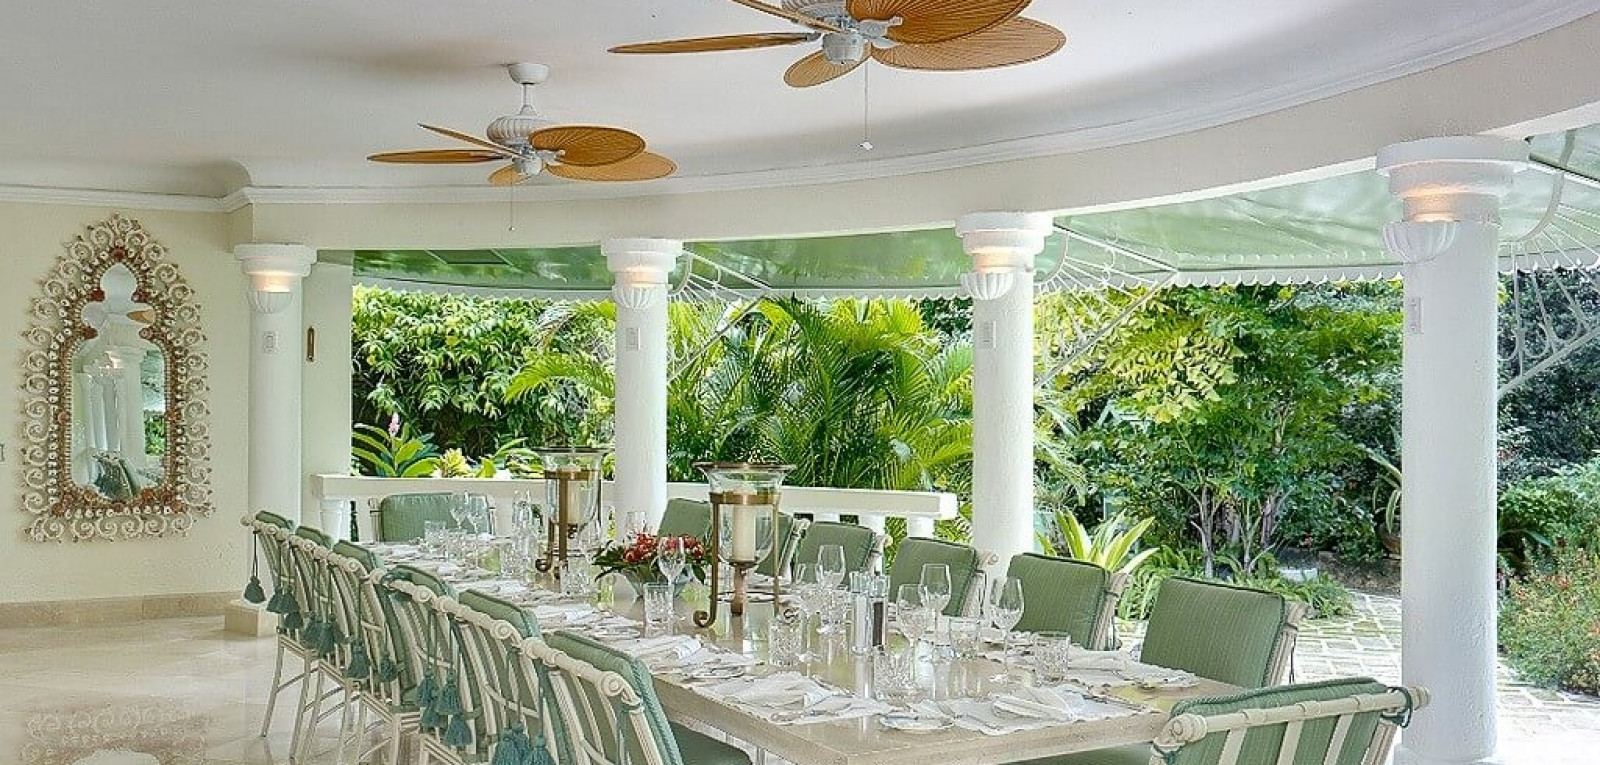 Outdoor Dining for 14 at 8 Bedroom Beachfront in St James with Speed Boat & Private Pool